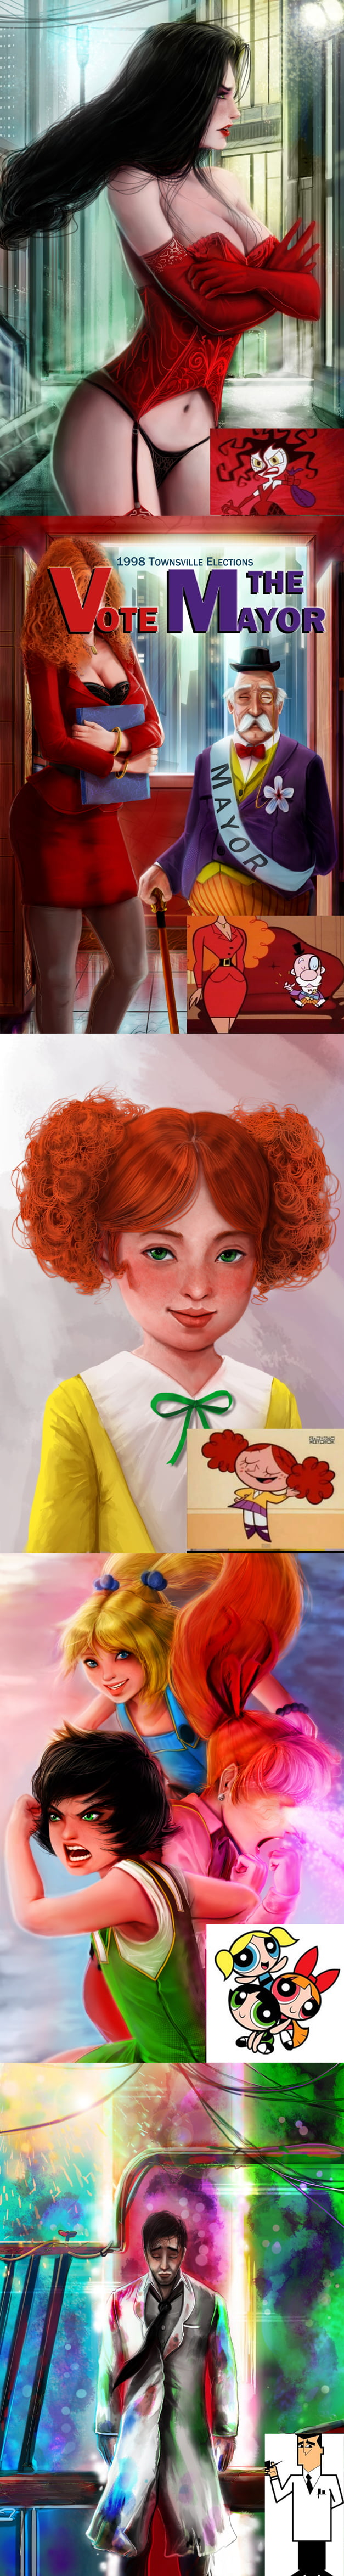 powerpuff girls realistic character artworks 9gag